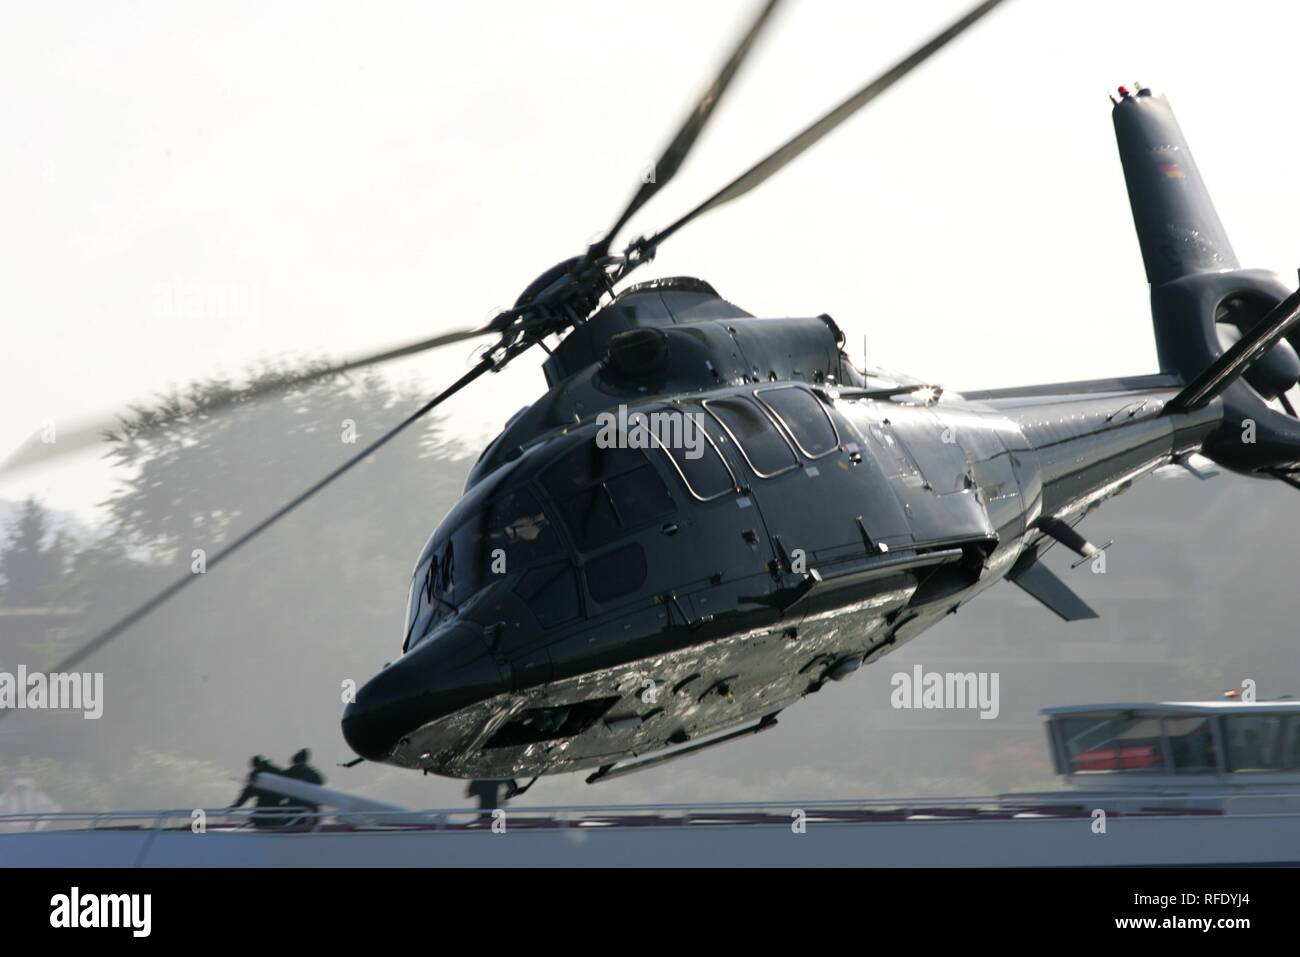 Police helicopter Eurocopter EC 155 transport helicopter, Duesseldorf, Germany - Stock Image